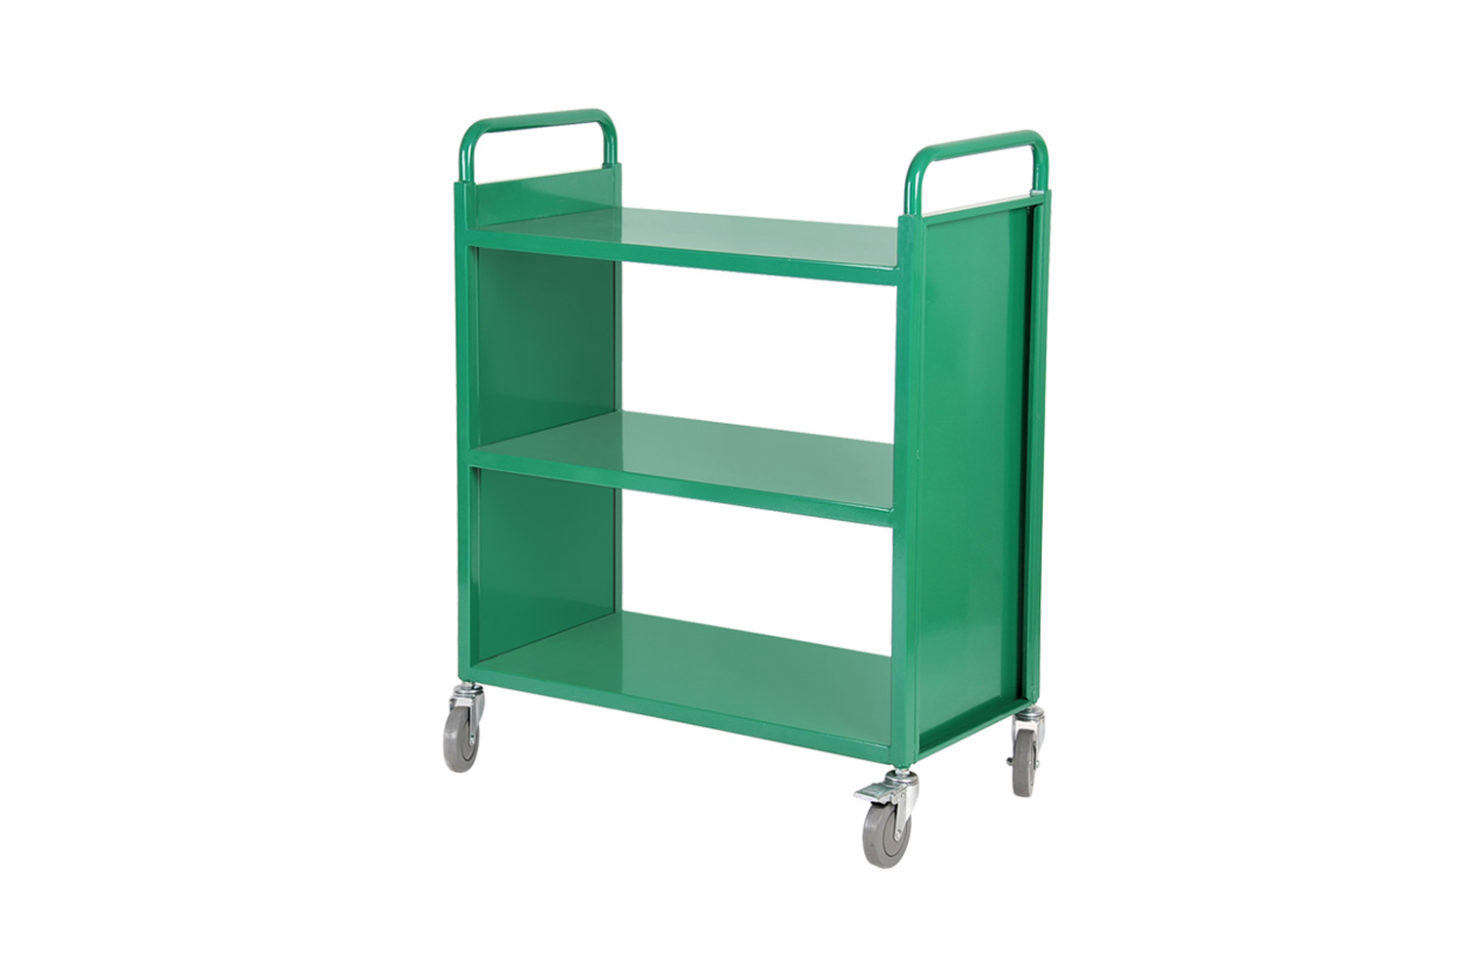 10 Easy Pieces: Library Carts - The Organized Home